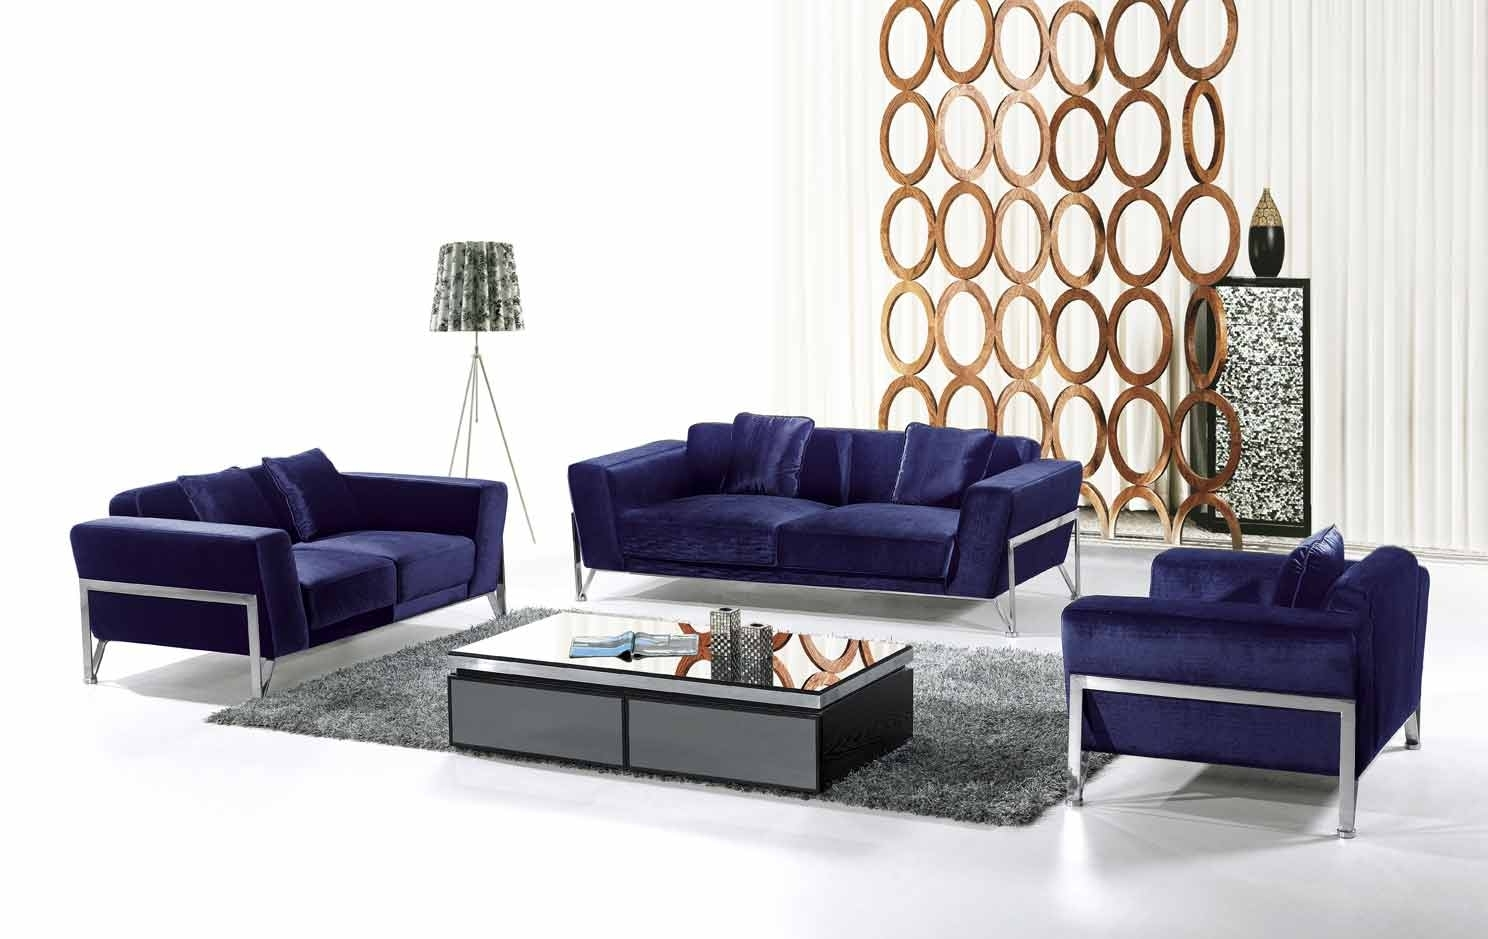 20 Best Collection of Living Room Sofa Chairs